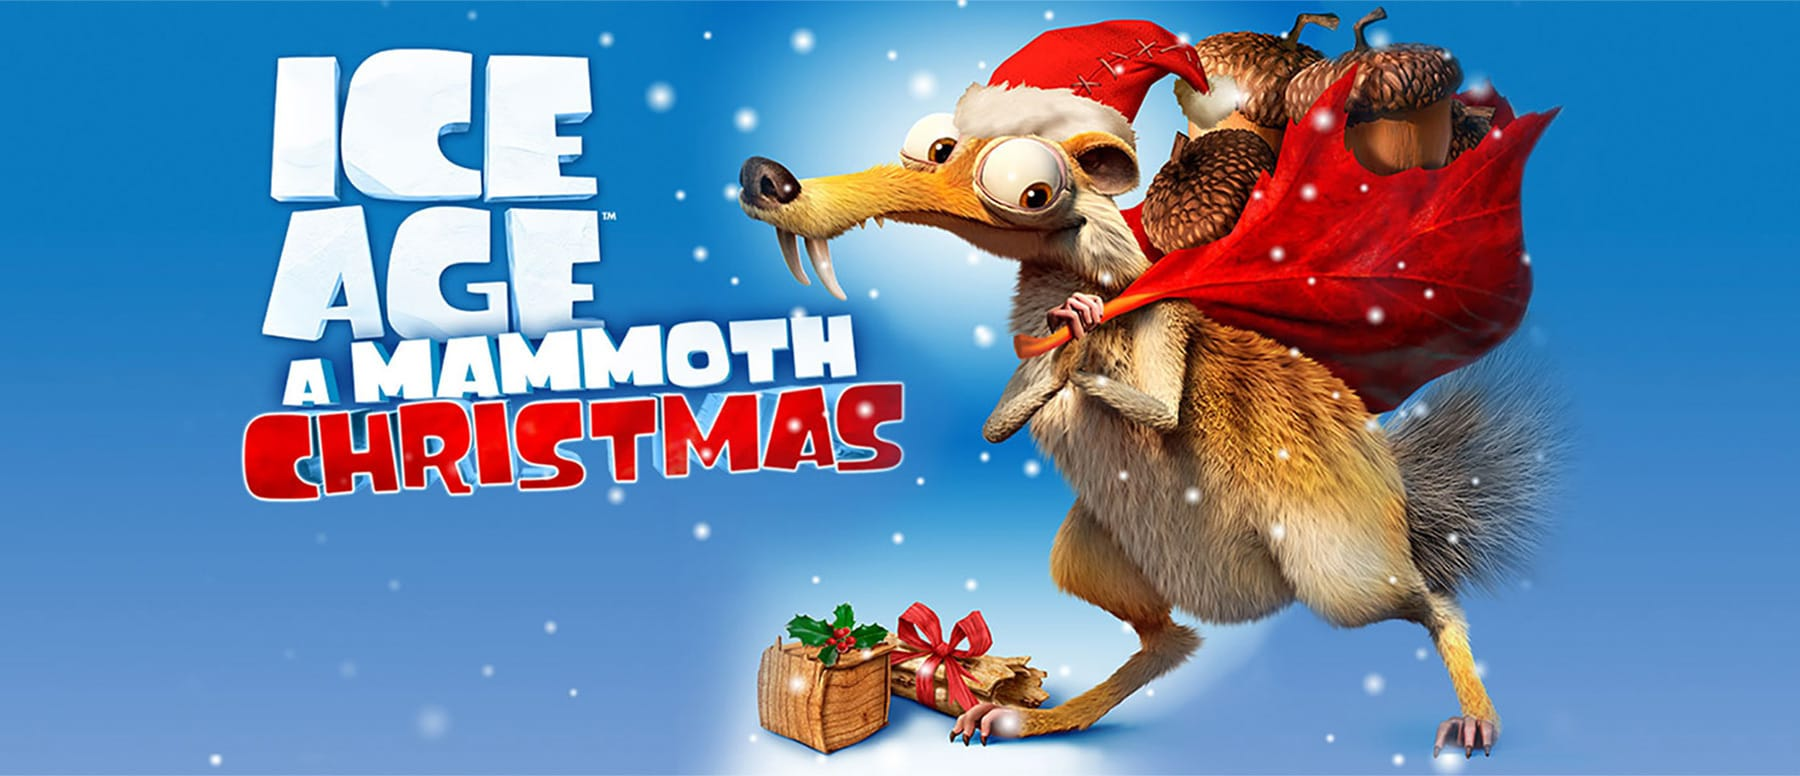 Ice Age: A Mammoth Christmas Hero